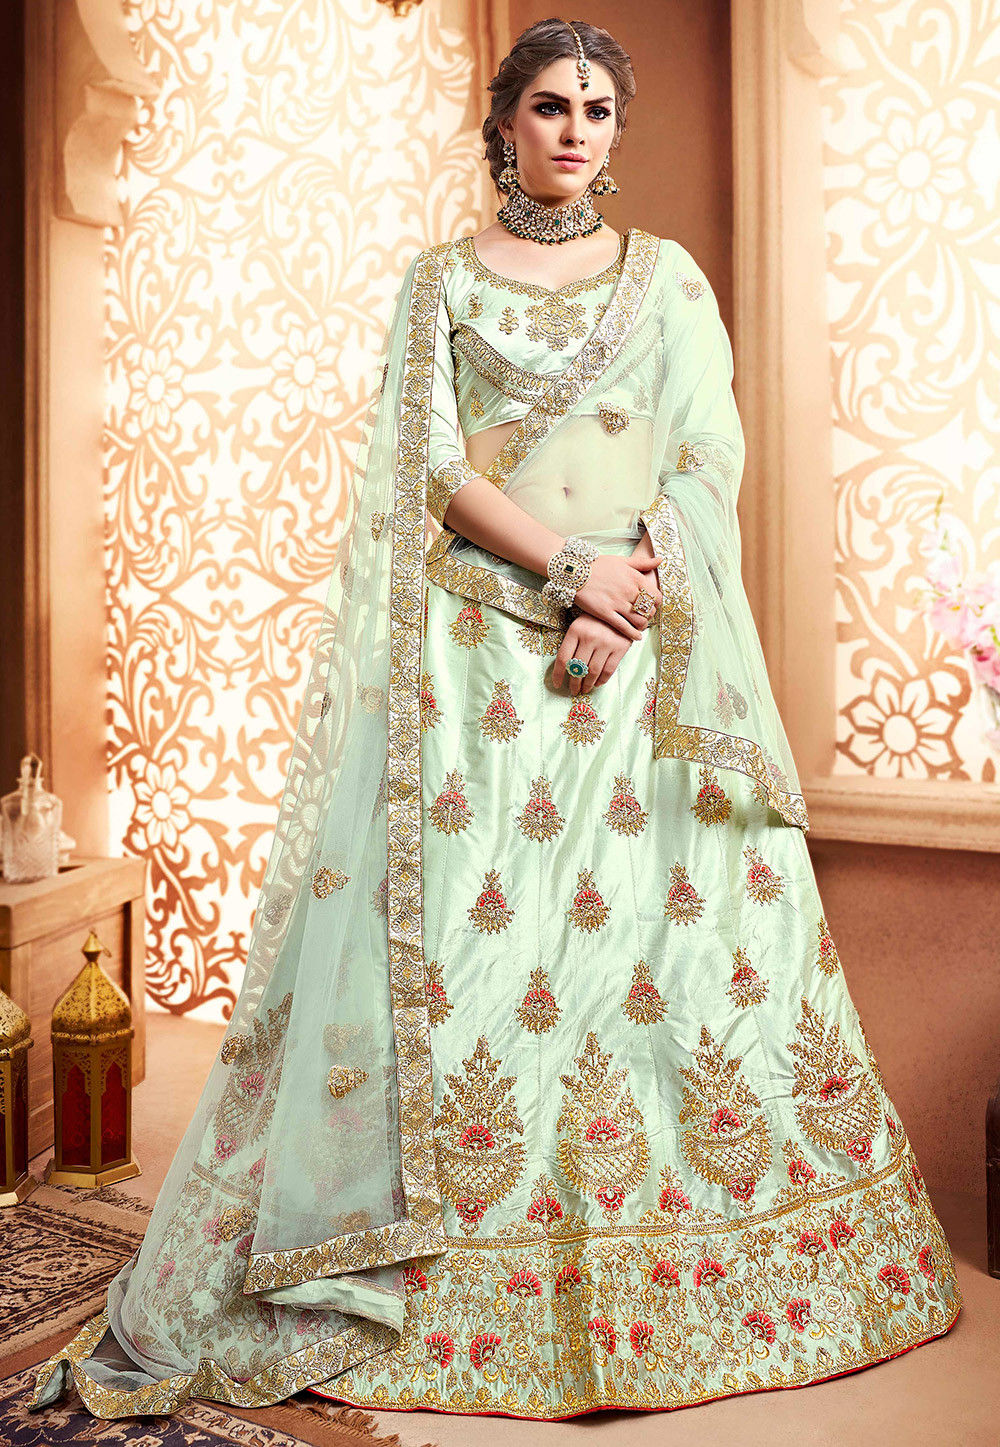 Embroidered Satin Lehenga in Pastel Green